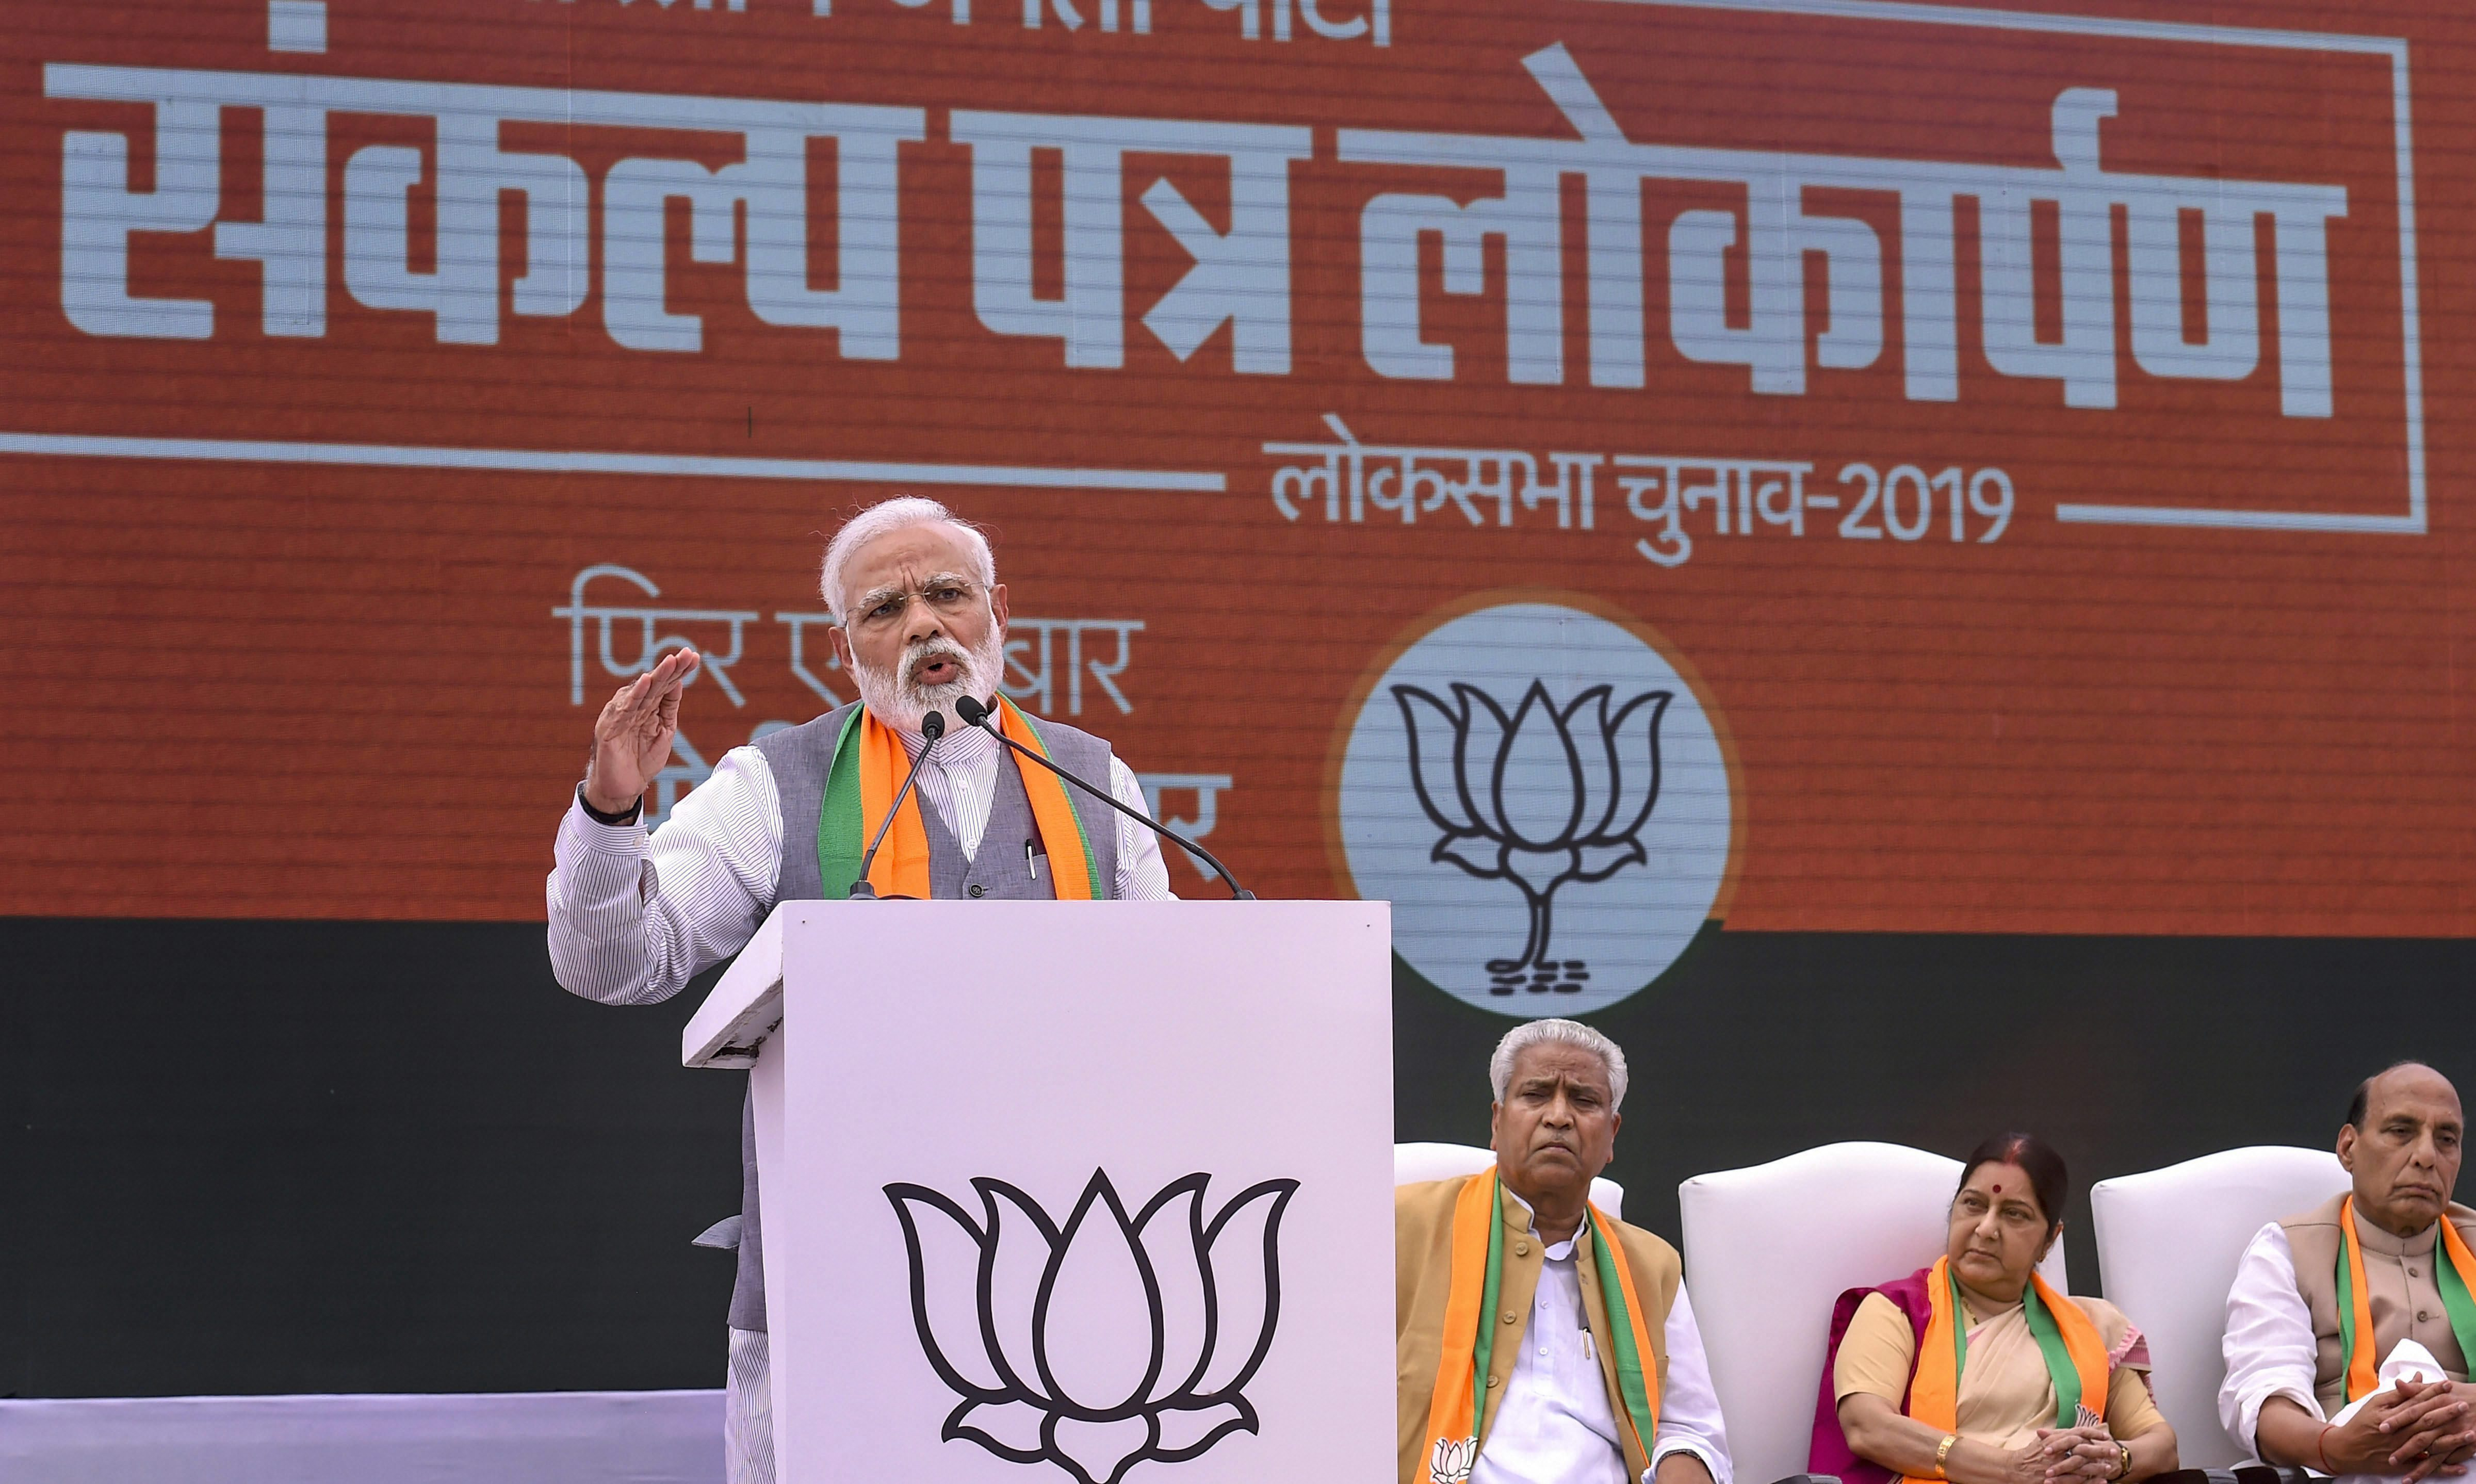 PM Narendra Modi at the release of the BJP manifesto in New Delhi on Monday, April 8, 2019. The dream making India an economic powerhouse when the debt burden has ballooned may seem ambitious. But then the BJP can always get away by saying it was a jumla - a false pledge